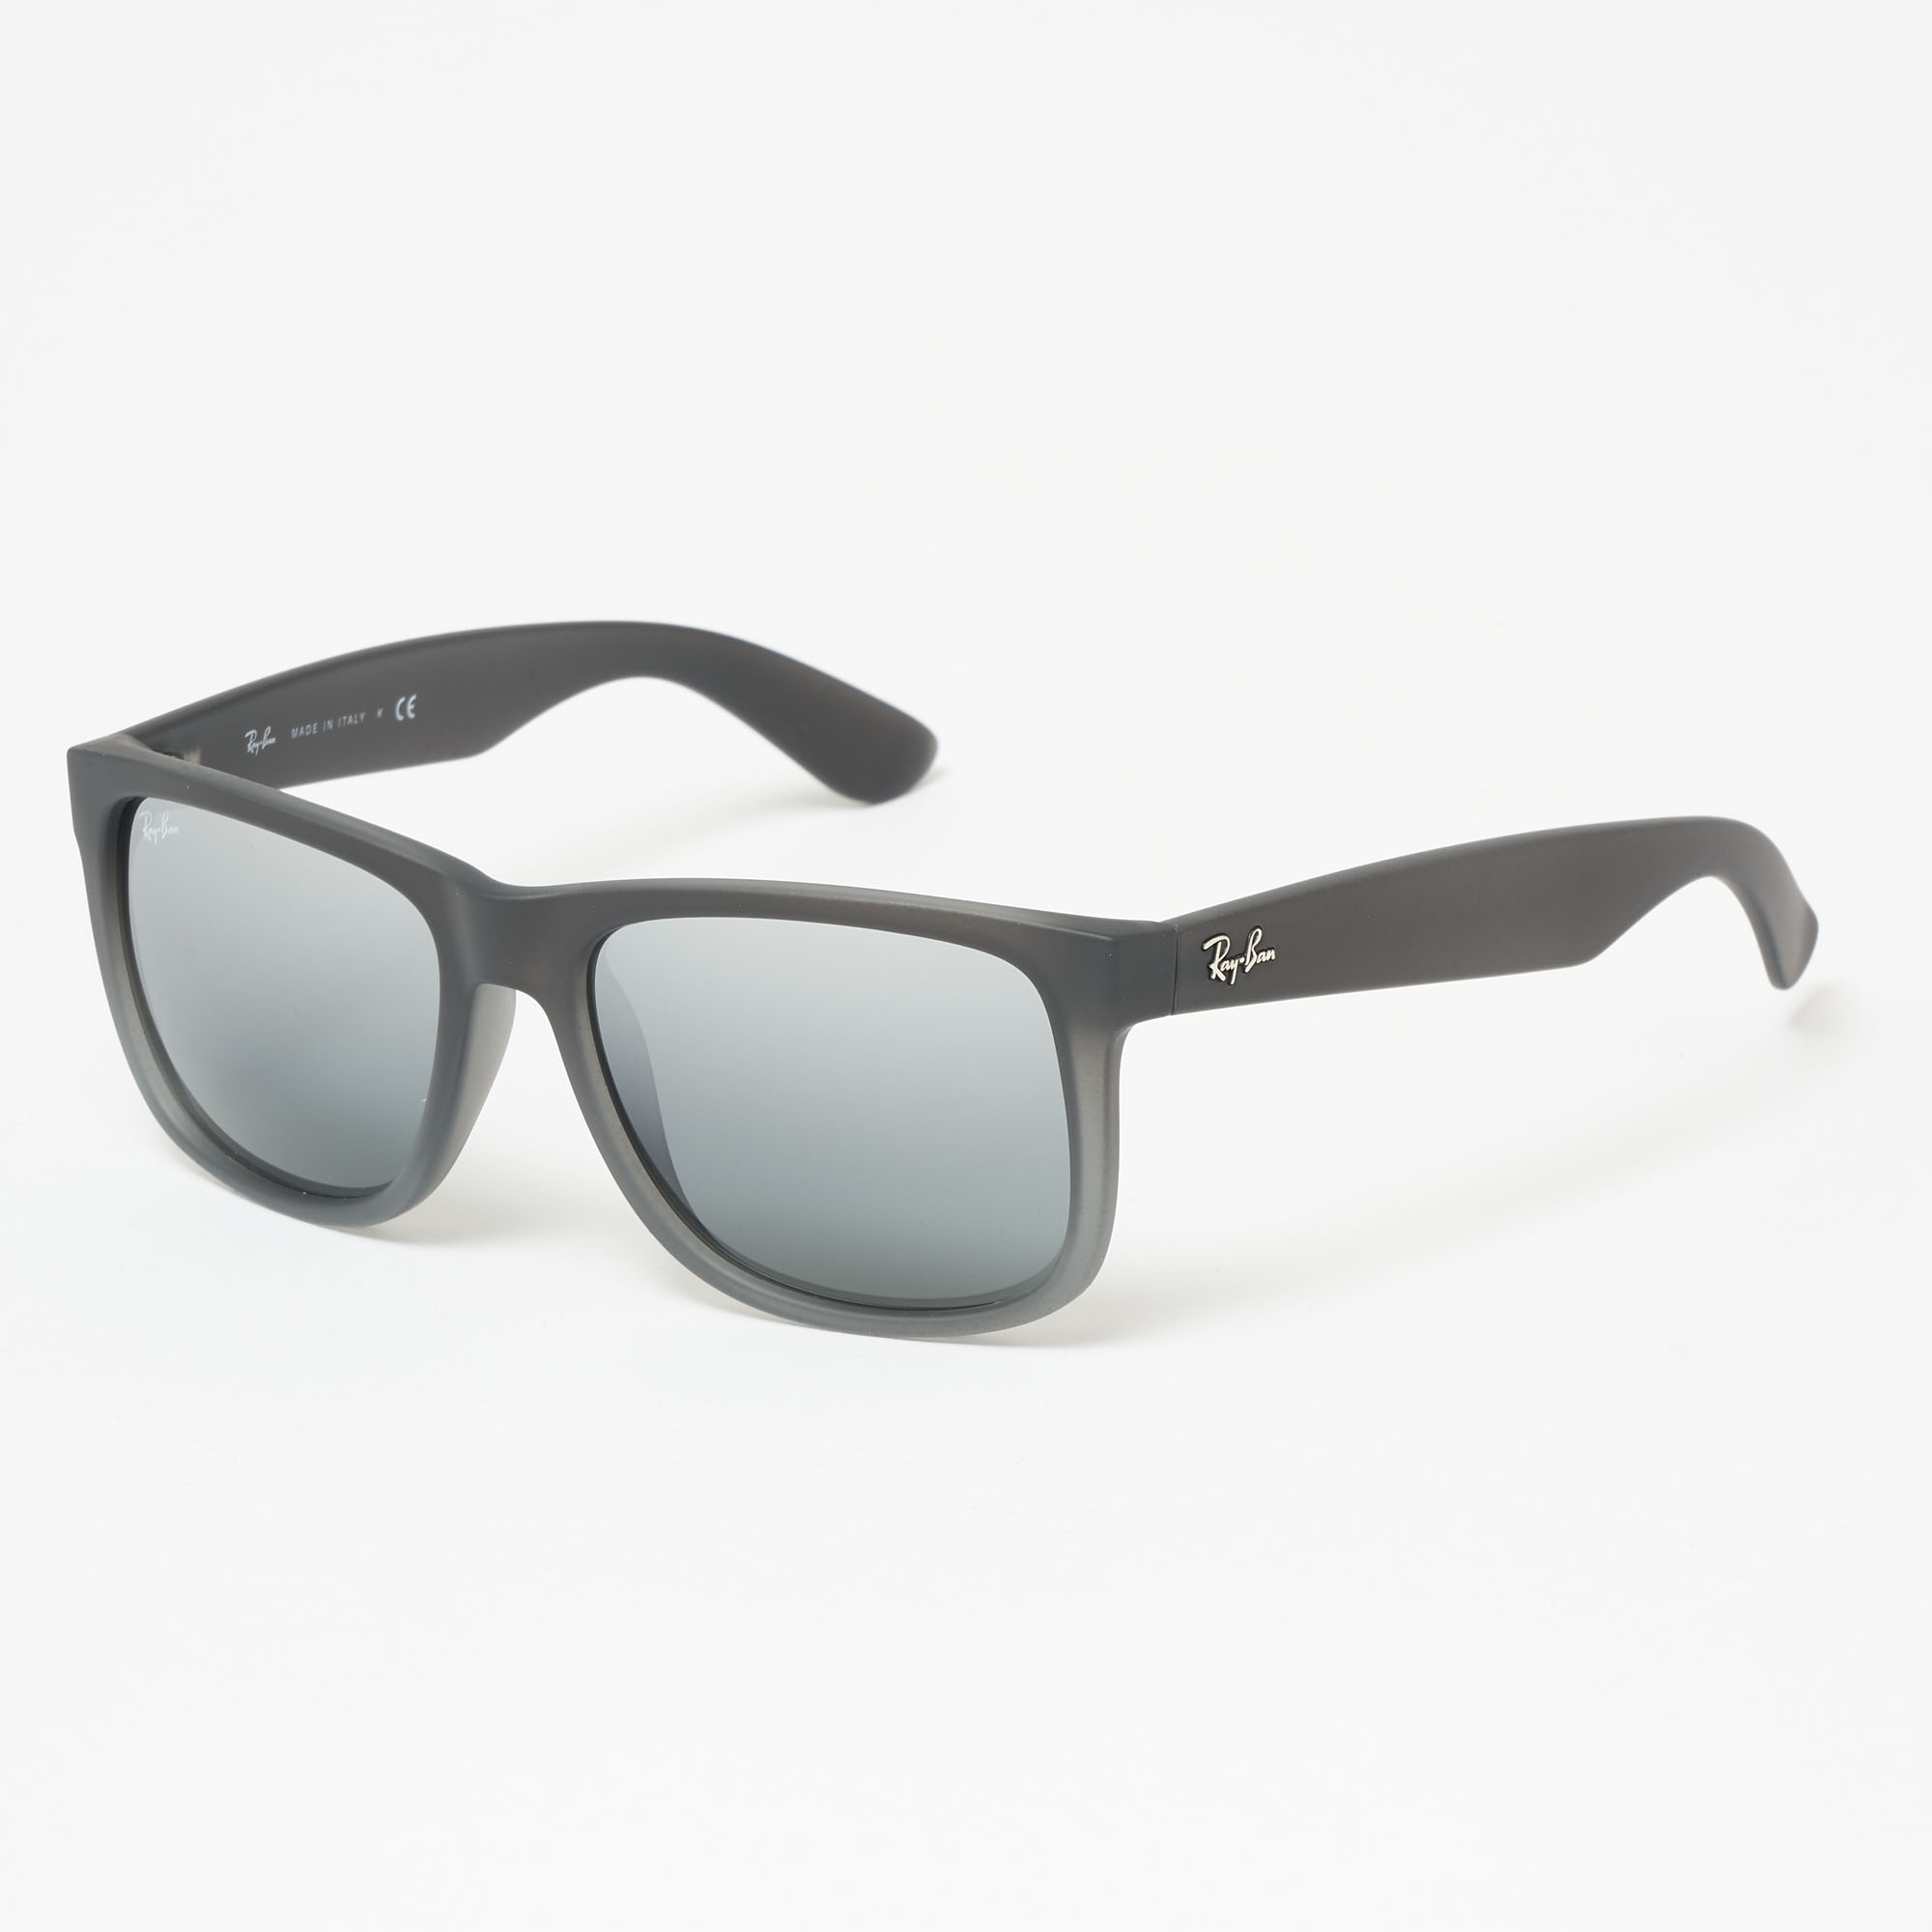 85bf39ca17 Smoke Grey Justin Sunglasses - Silver Gradient Mirror Lenses